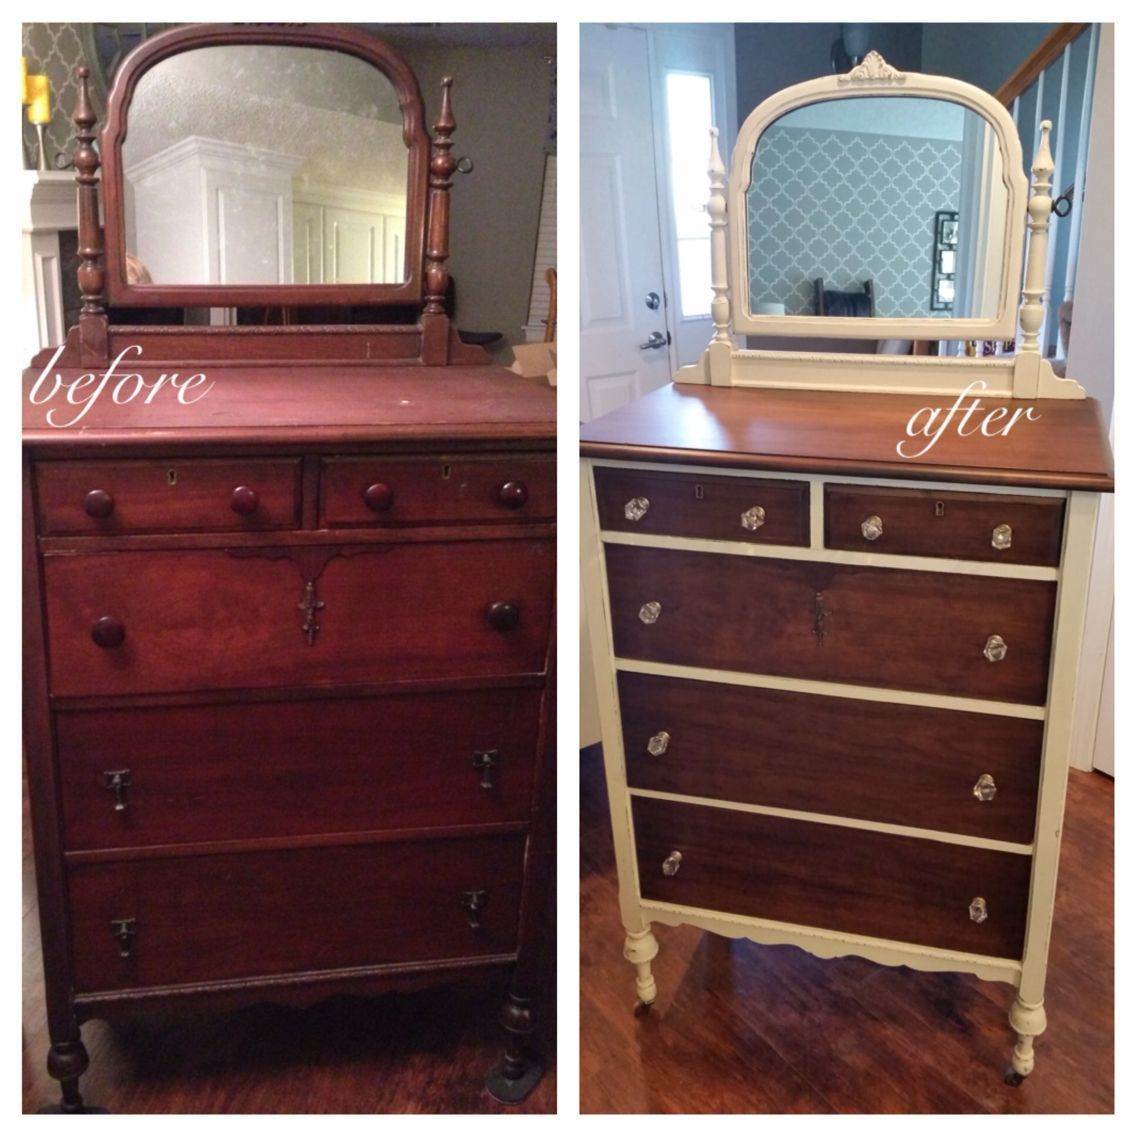 Antique Highboy Dresser With Mirror Painted Annie Sloan Chalk Paint In Old Ochre And